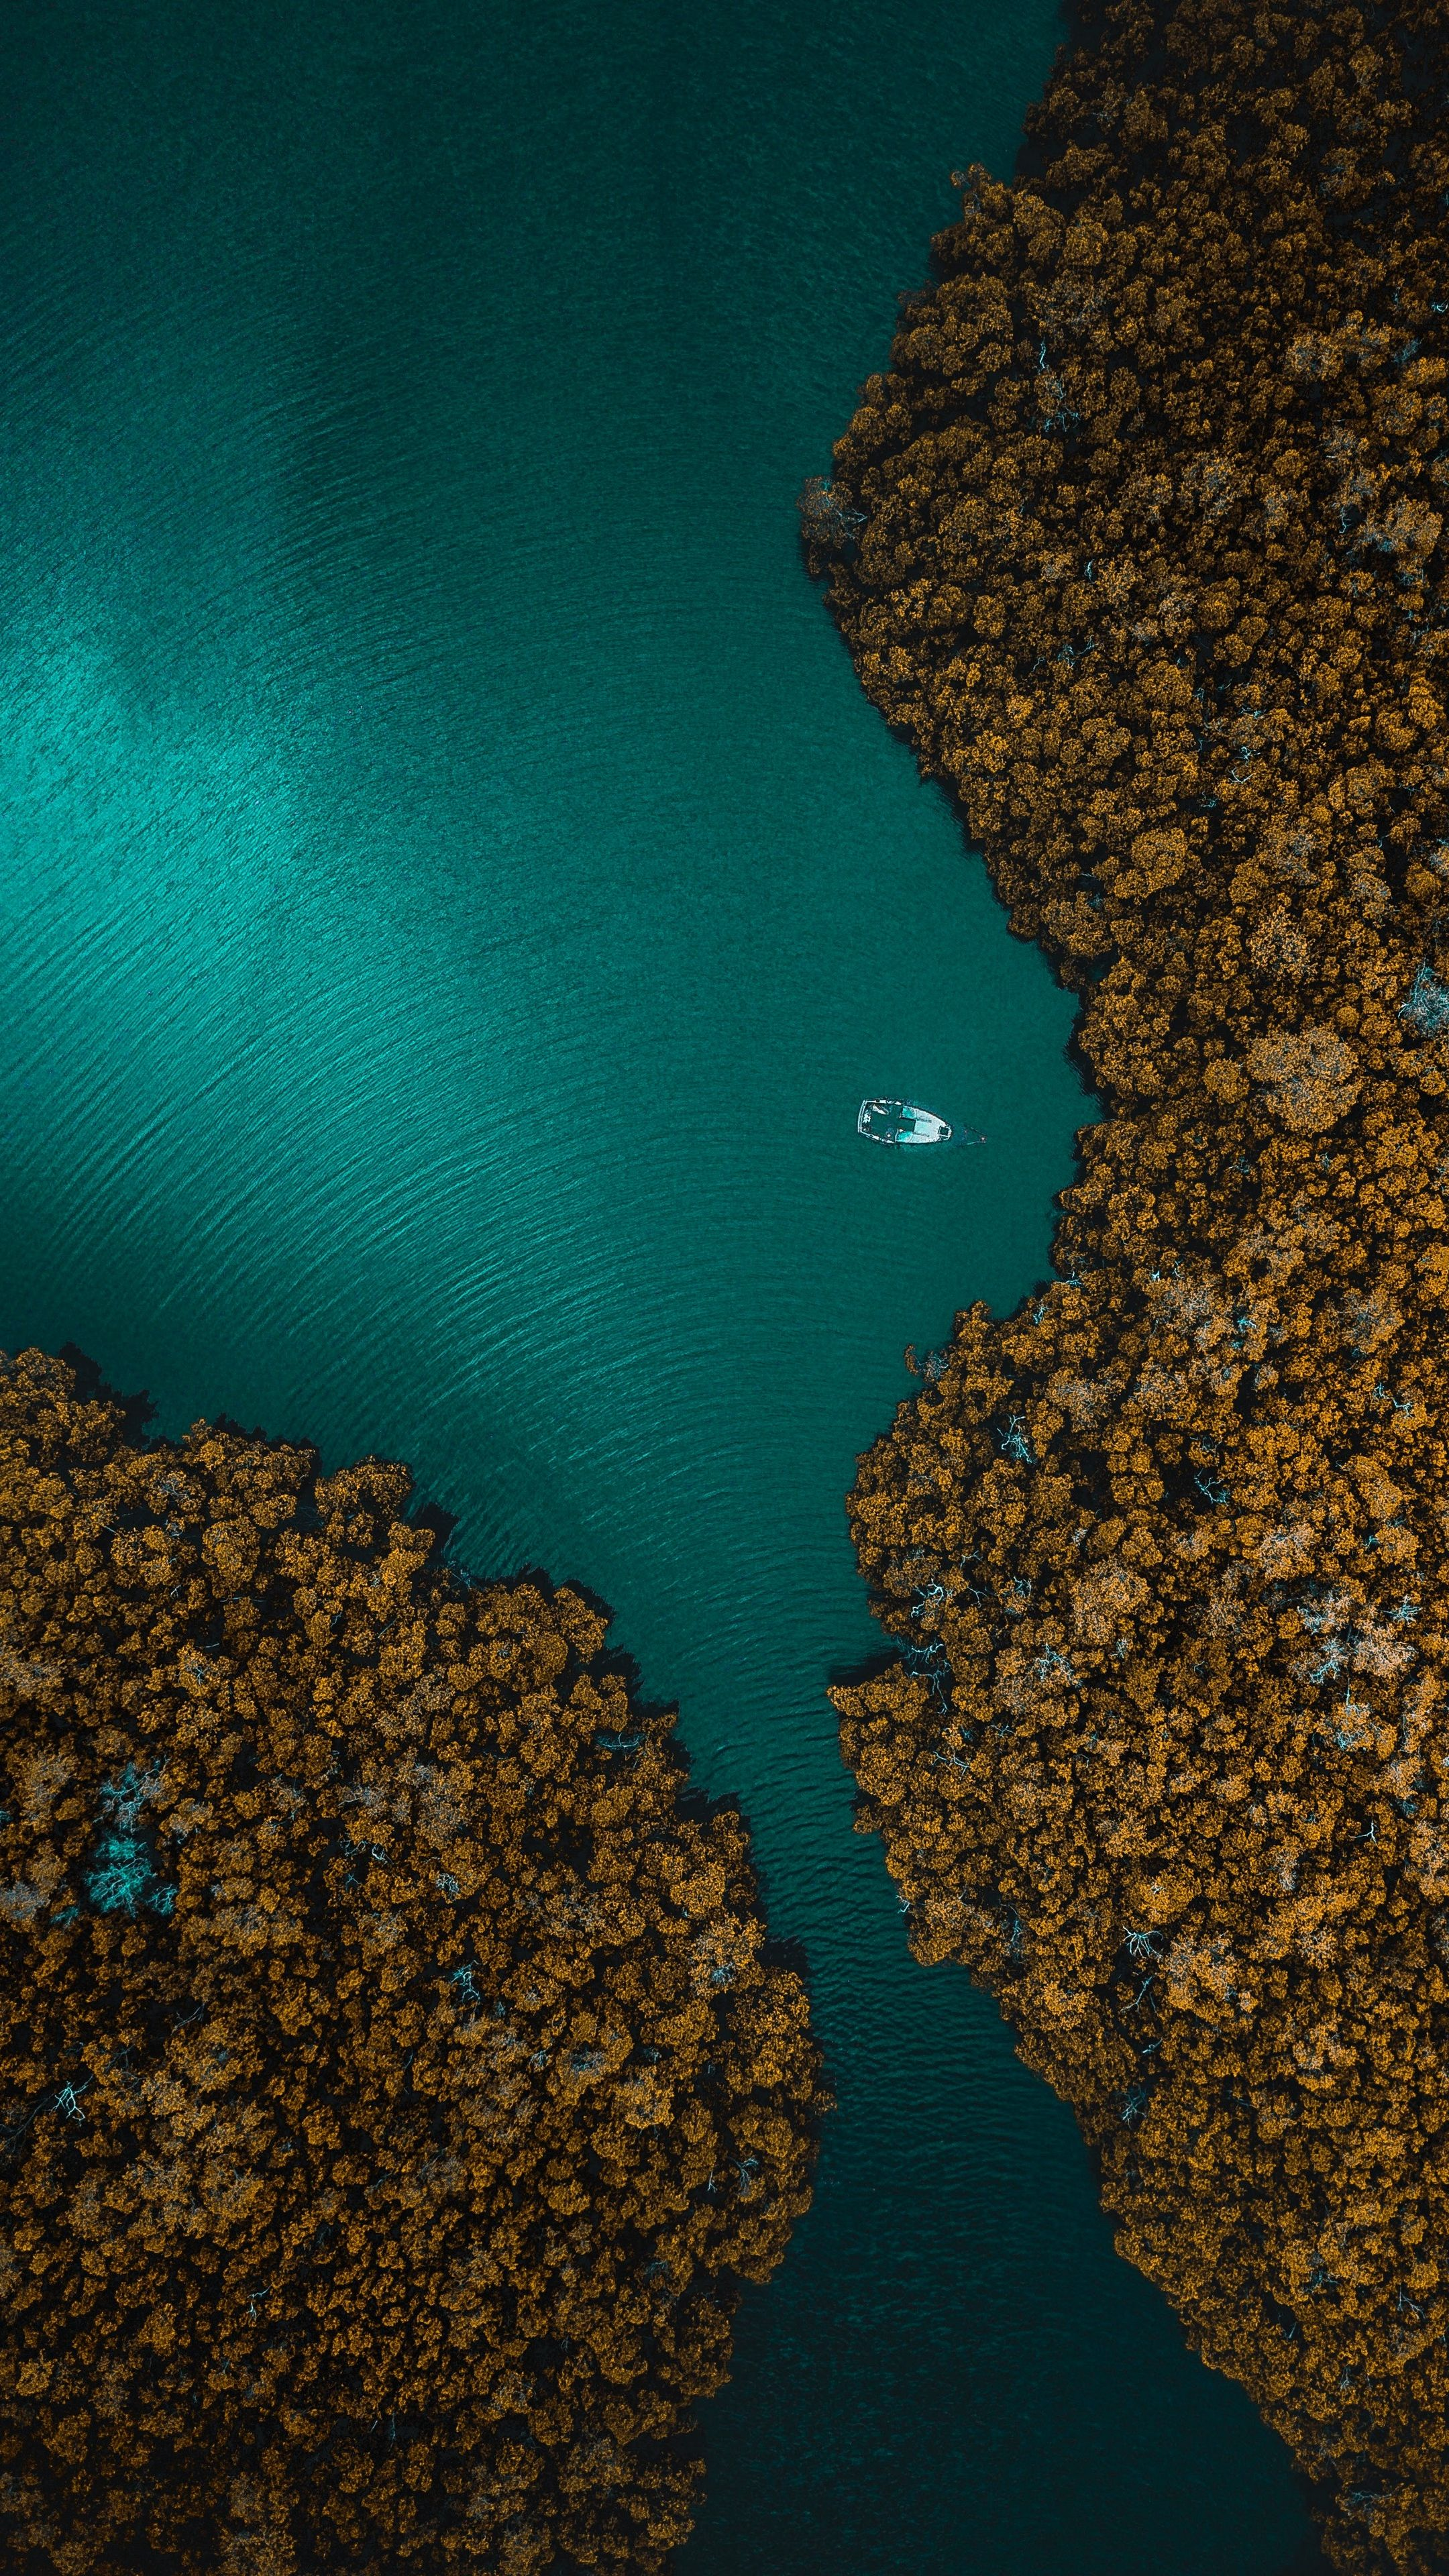 Nature Island Ocean Topview Wallpapers Hd 4k Background For Android Landscape Photography Nature Wallpaper Nature Photography